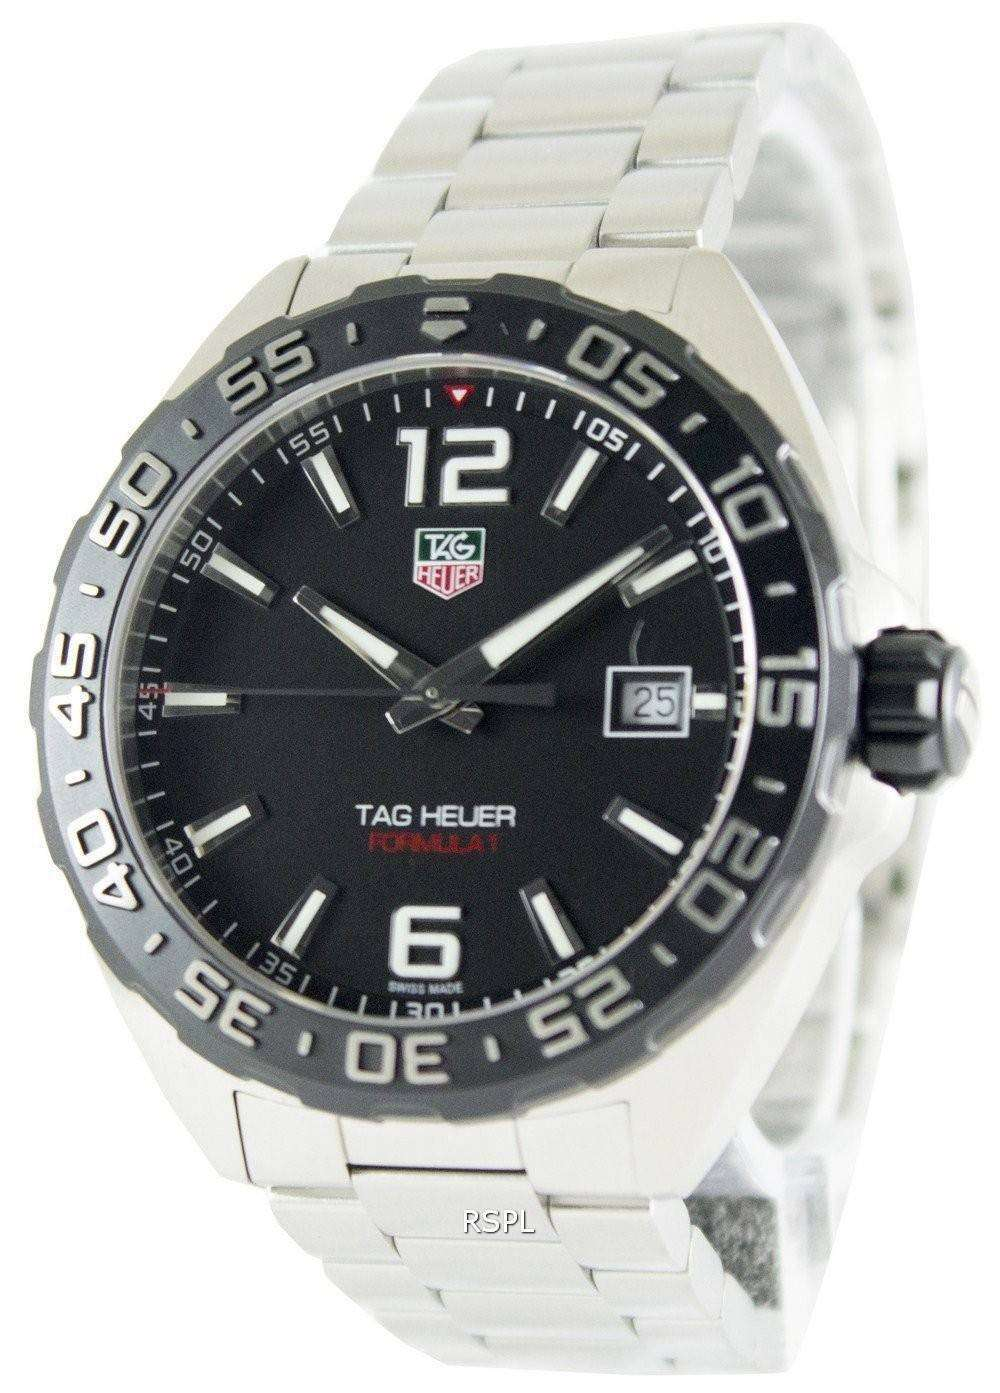 Our many years in the discount designer watch business, reputation for honesty, and excellent service are your guarantee of satisfaction at great discount prices.